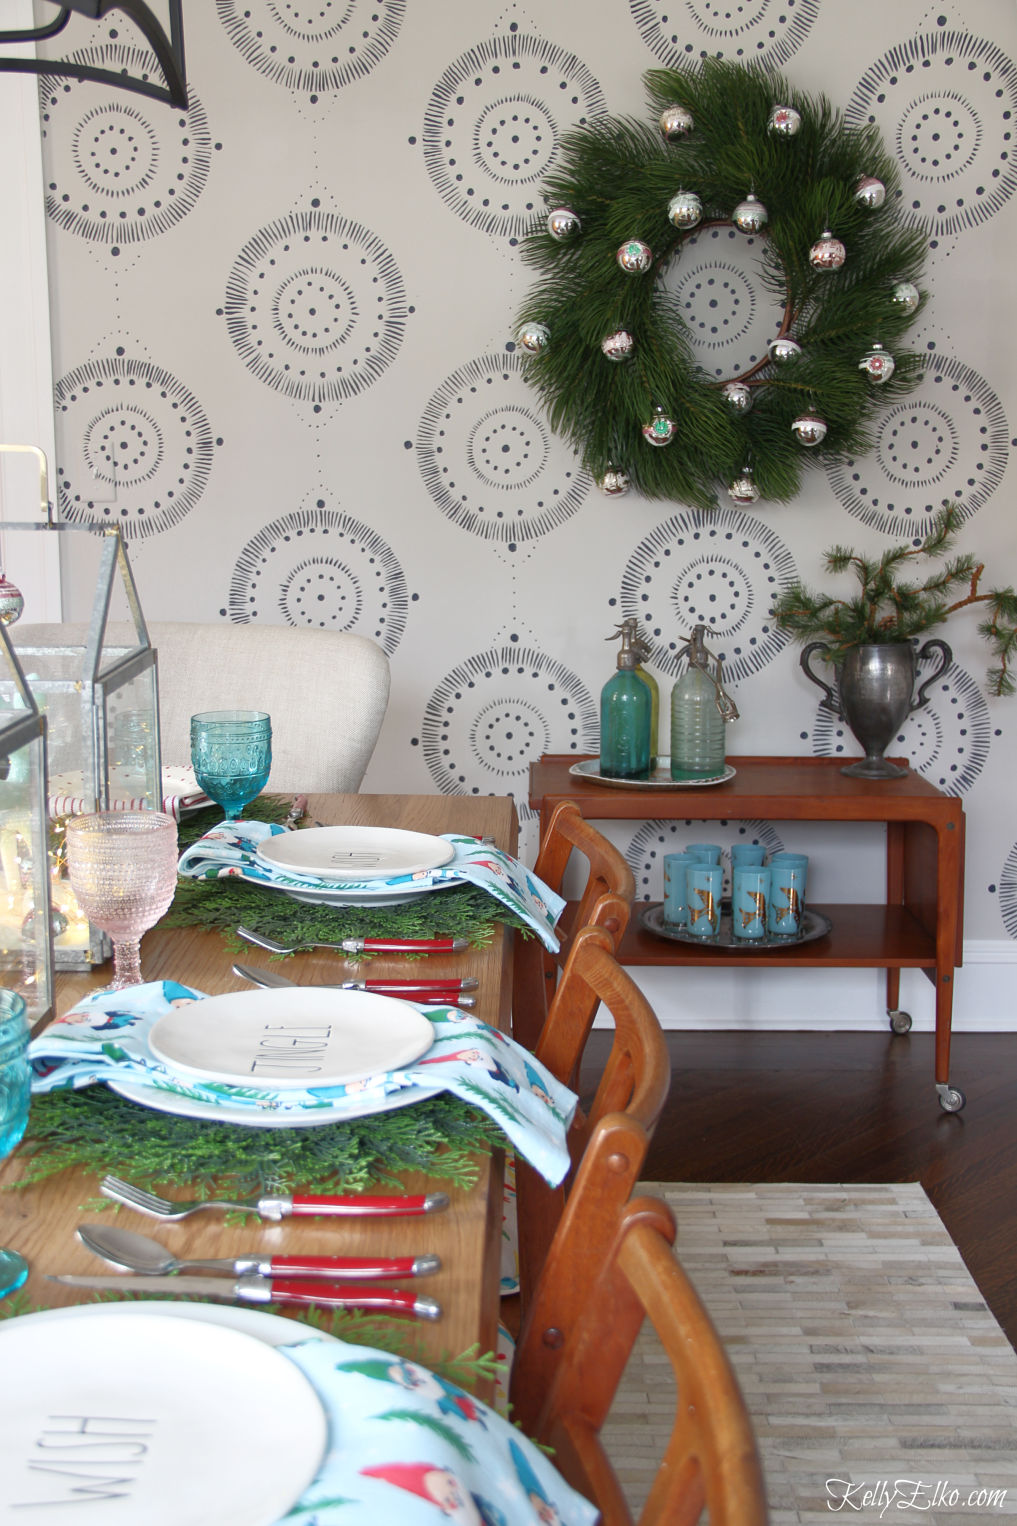 Beautiful Christmas dining room kellyelko.com #christmasdecor #christmasdiningroom #christmaswreath #vintagechristmas #wallmural #diywallart